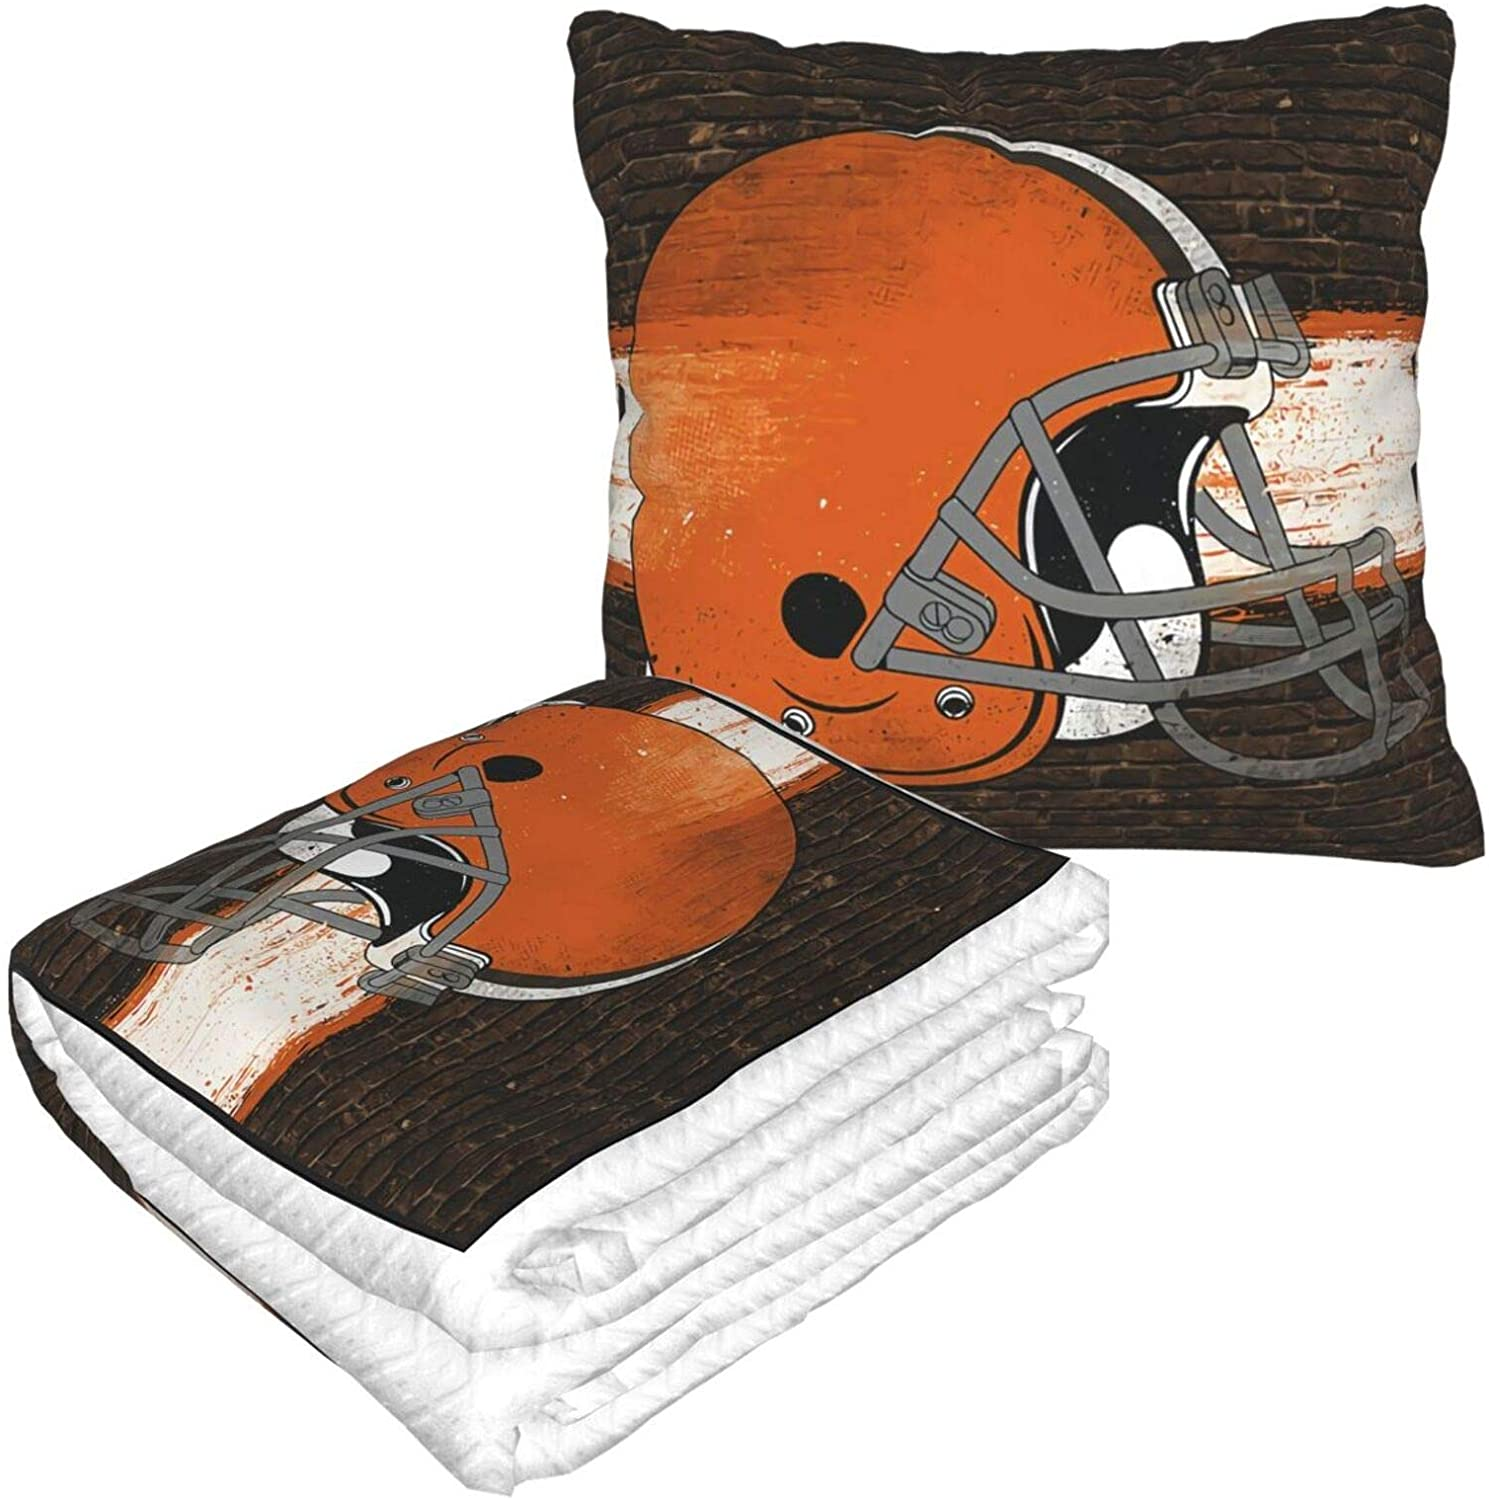 ALHOKLAus Football Cleveland Brown Pillow Blanket Sofa Blanket, Travel Blanket and Pillow 2-in-1 Combination Blanket, Warm Pillow Throw Blanket for beds, Sofas, Camping, Airplanes, etc.